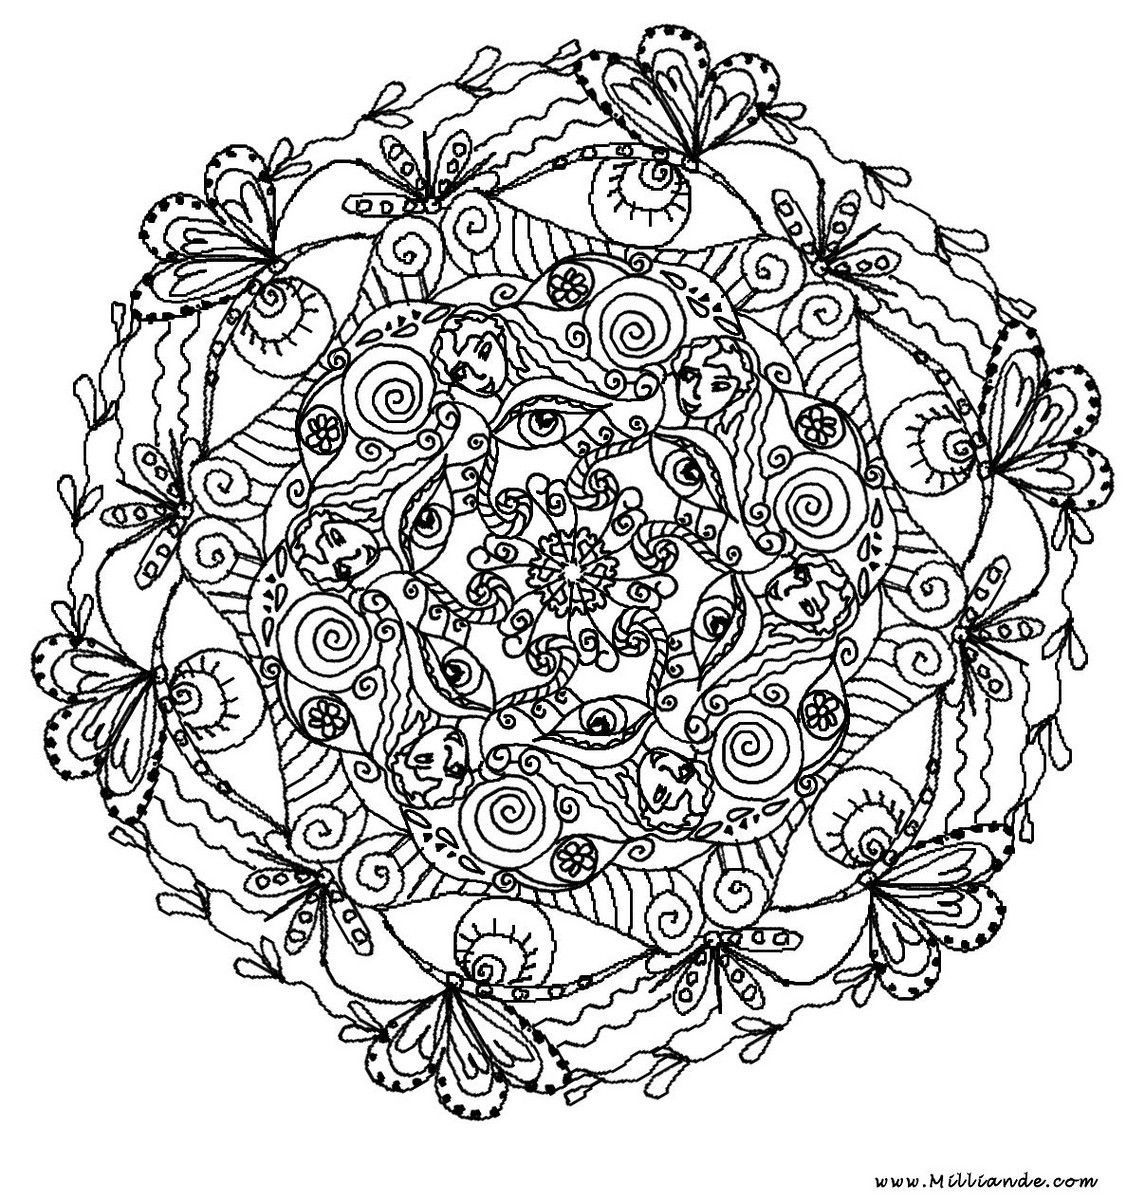 Advanced Mandala Coloring Pages Printable Mandala Coloring